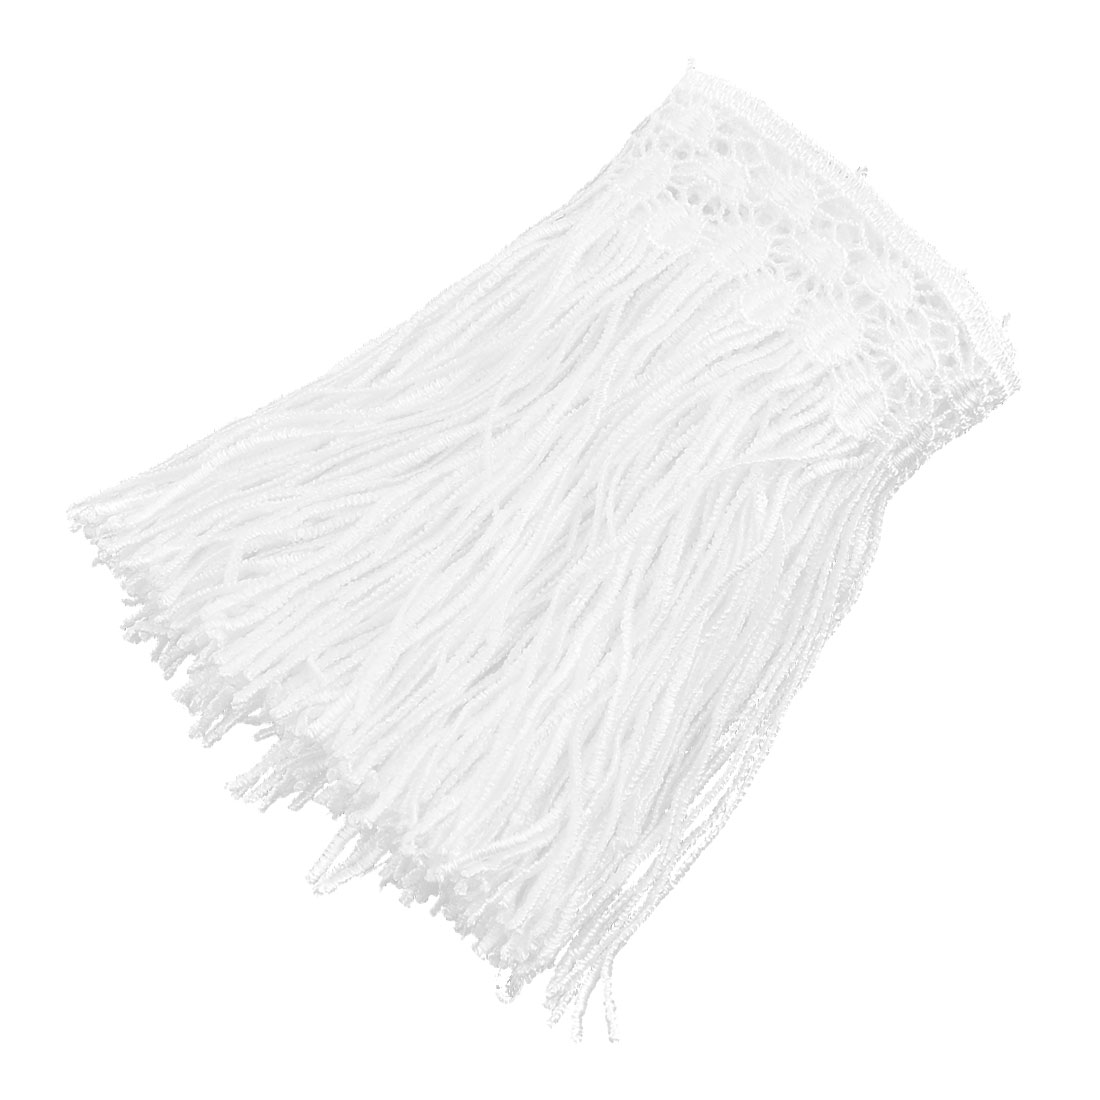 Polyester Tassel Decor DIY Clothes Embellishment Lace Trim Applique 5.1 Inches Width